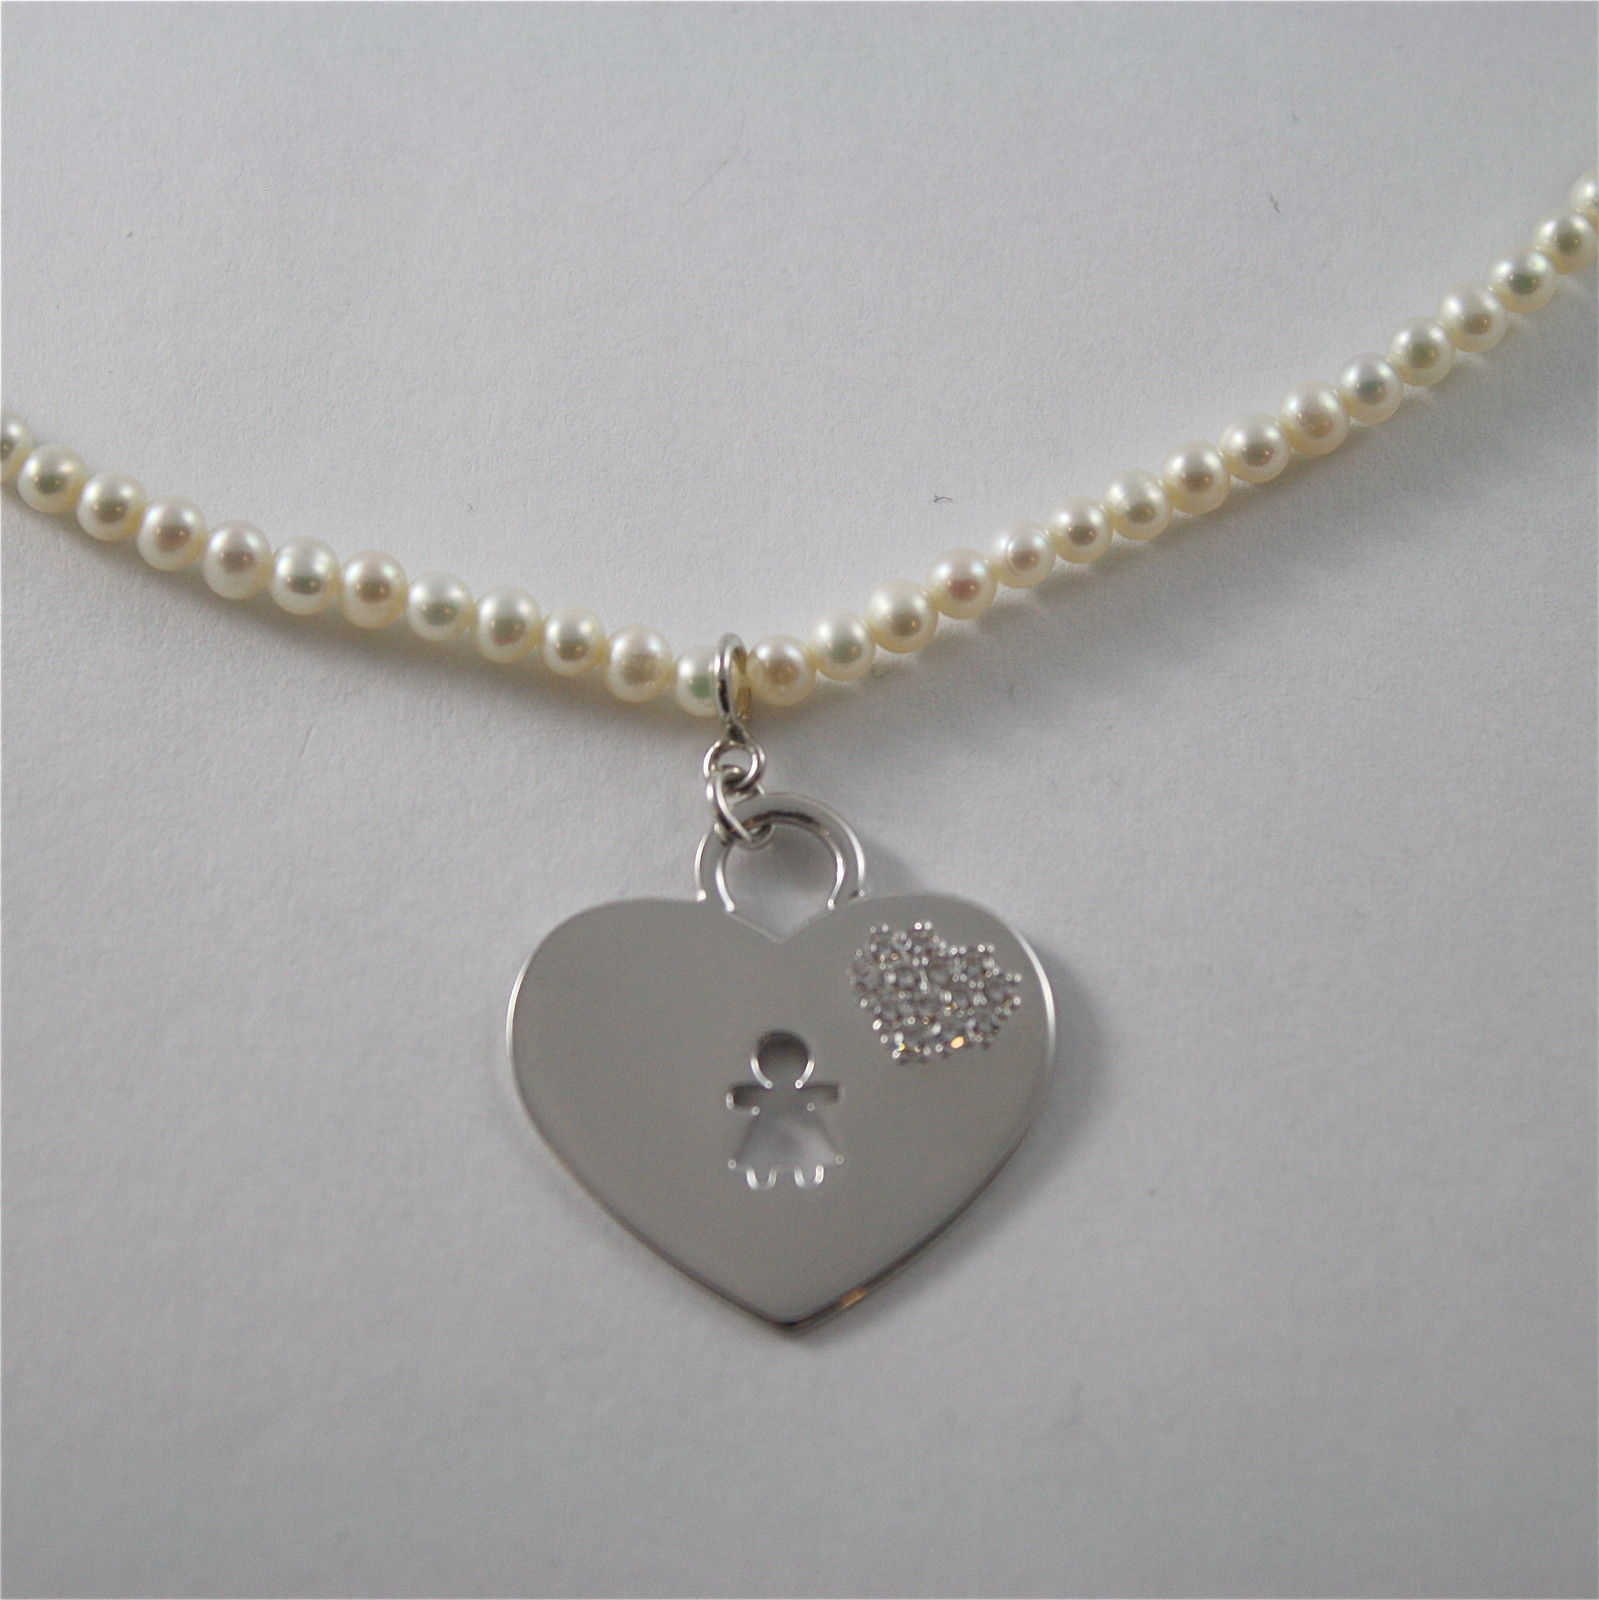 925 Silver Necklace Rhodium with White Pearls 4 MM and Pendant Girl Heart'